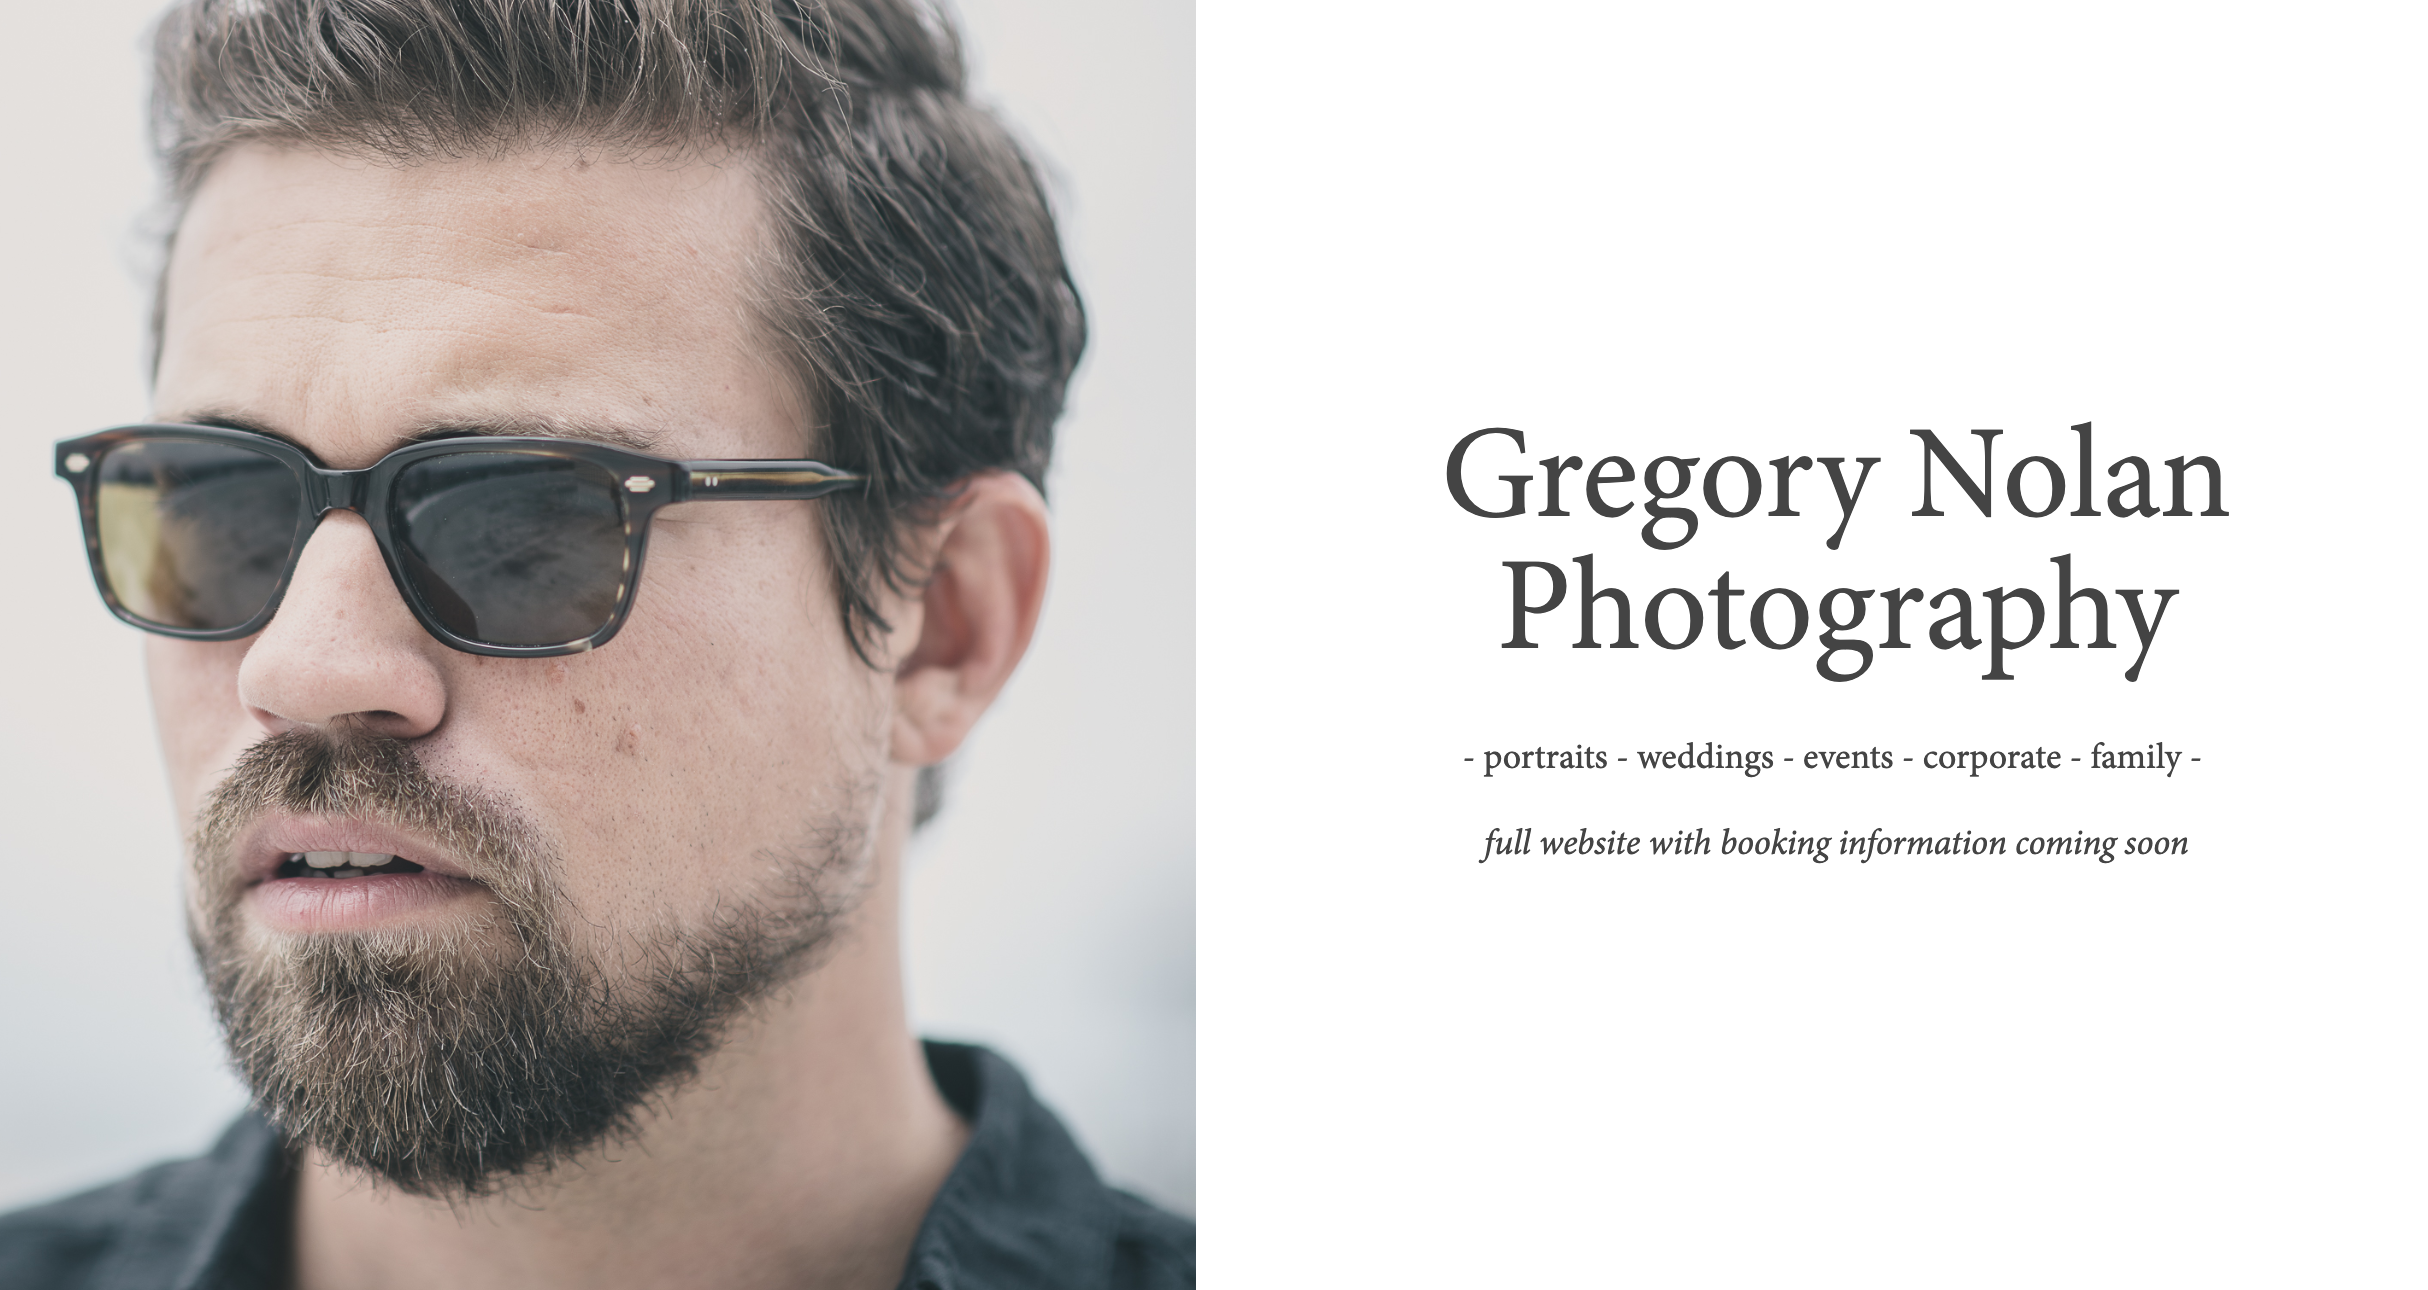 Gregory Nolan Photography